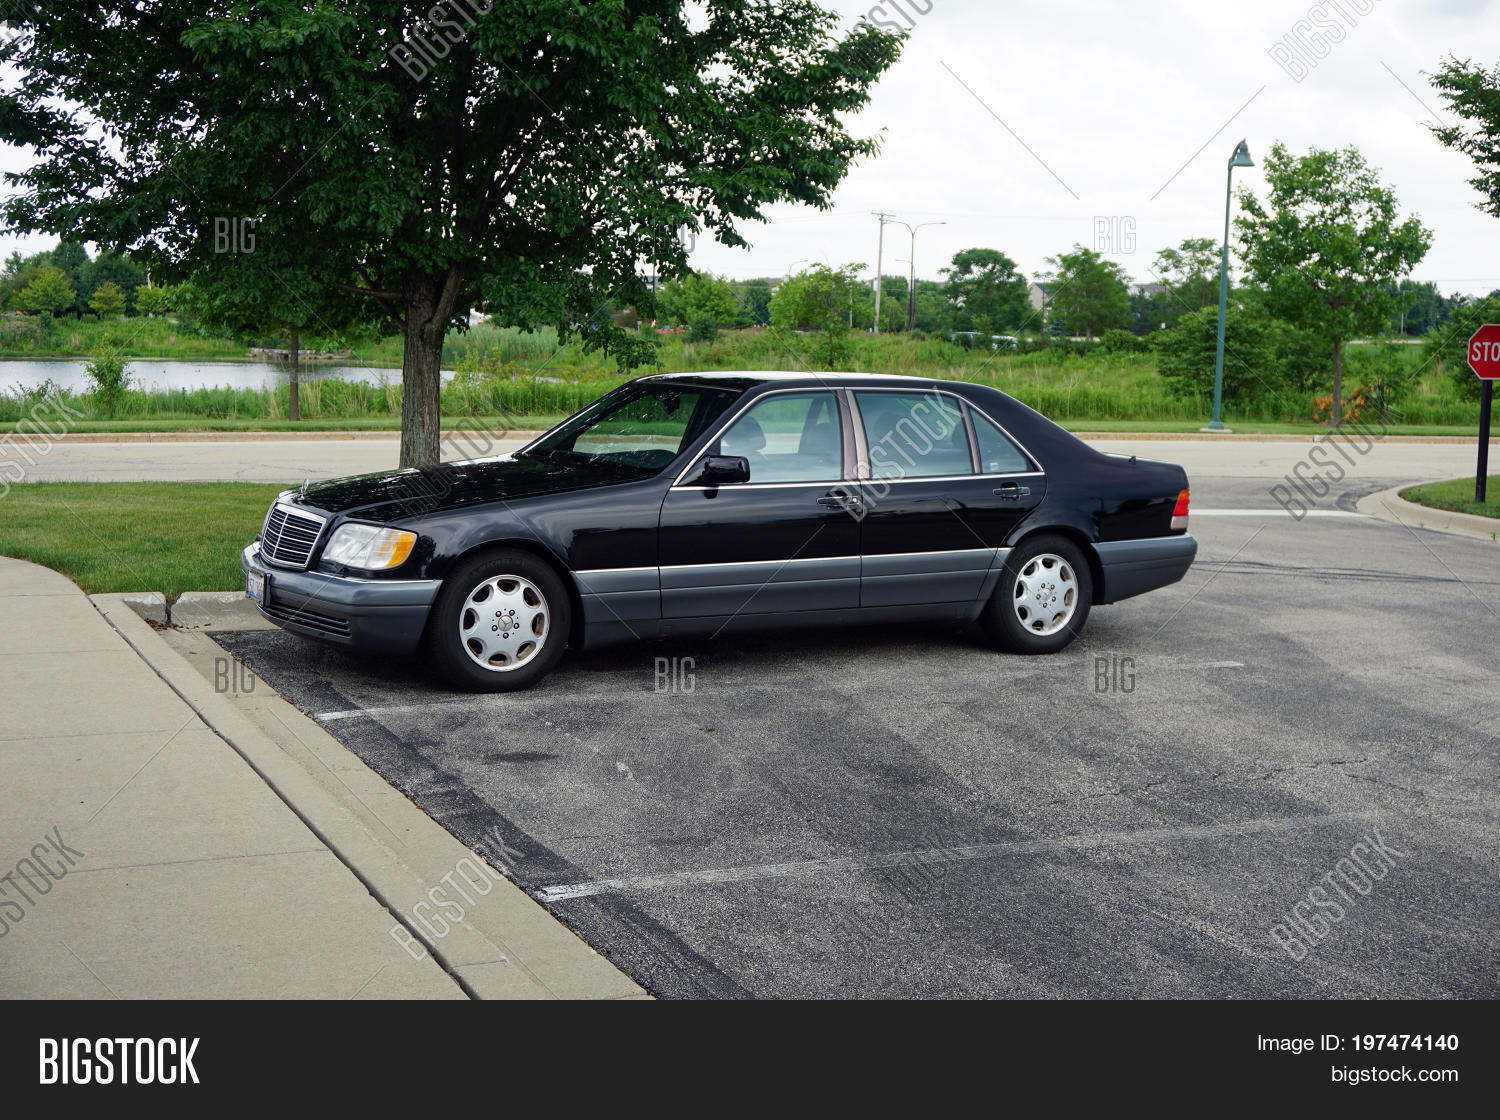 hight resolution of plainfield illinois united states june 30 2017 a 1996 black mercedes